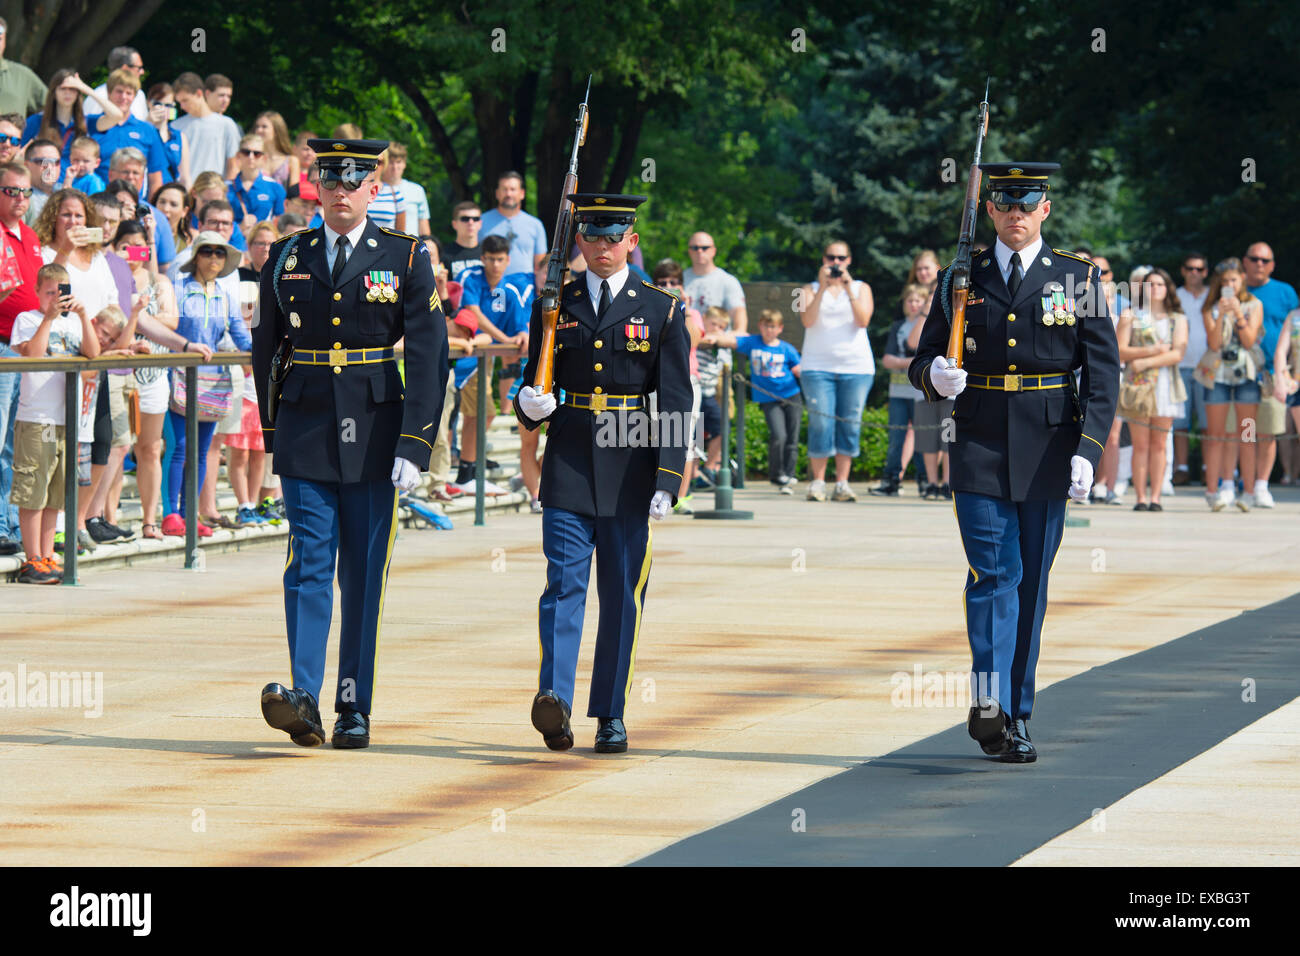 Changing of the Guard, Arlington National Cemetery, Tomb of the Unknown Soldier, Virginia - Stock Image